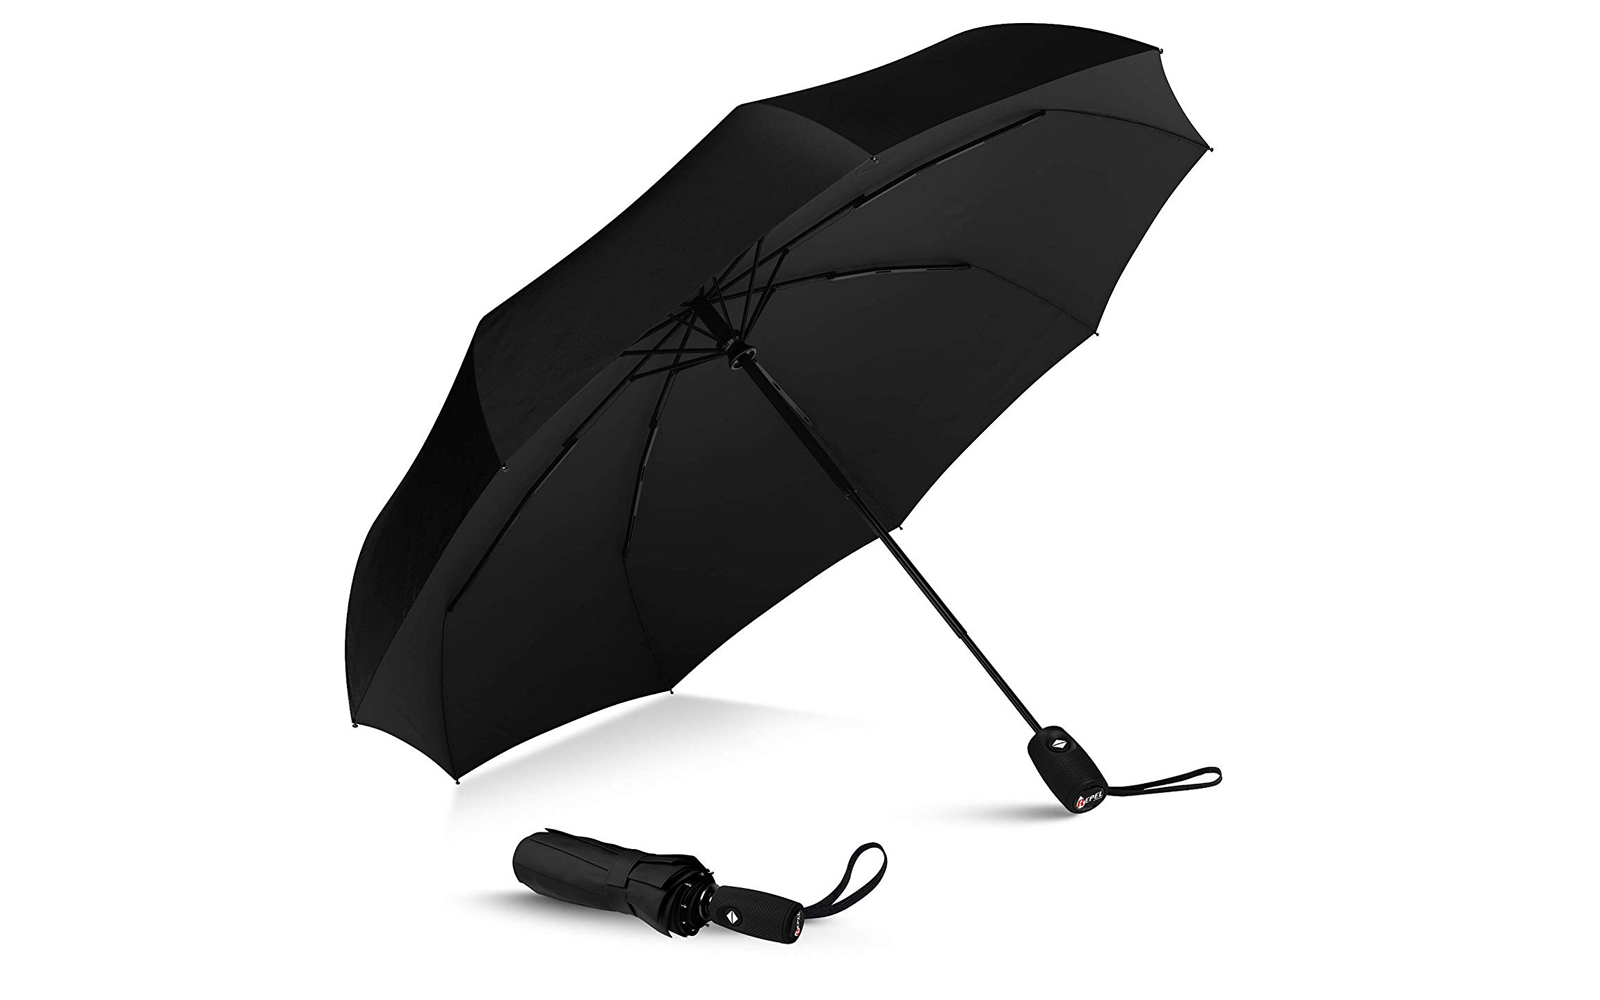 Best Travel Umbrella on Amazon